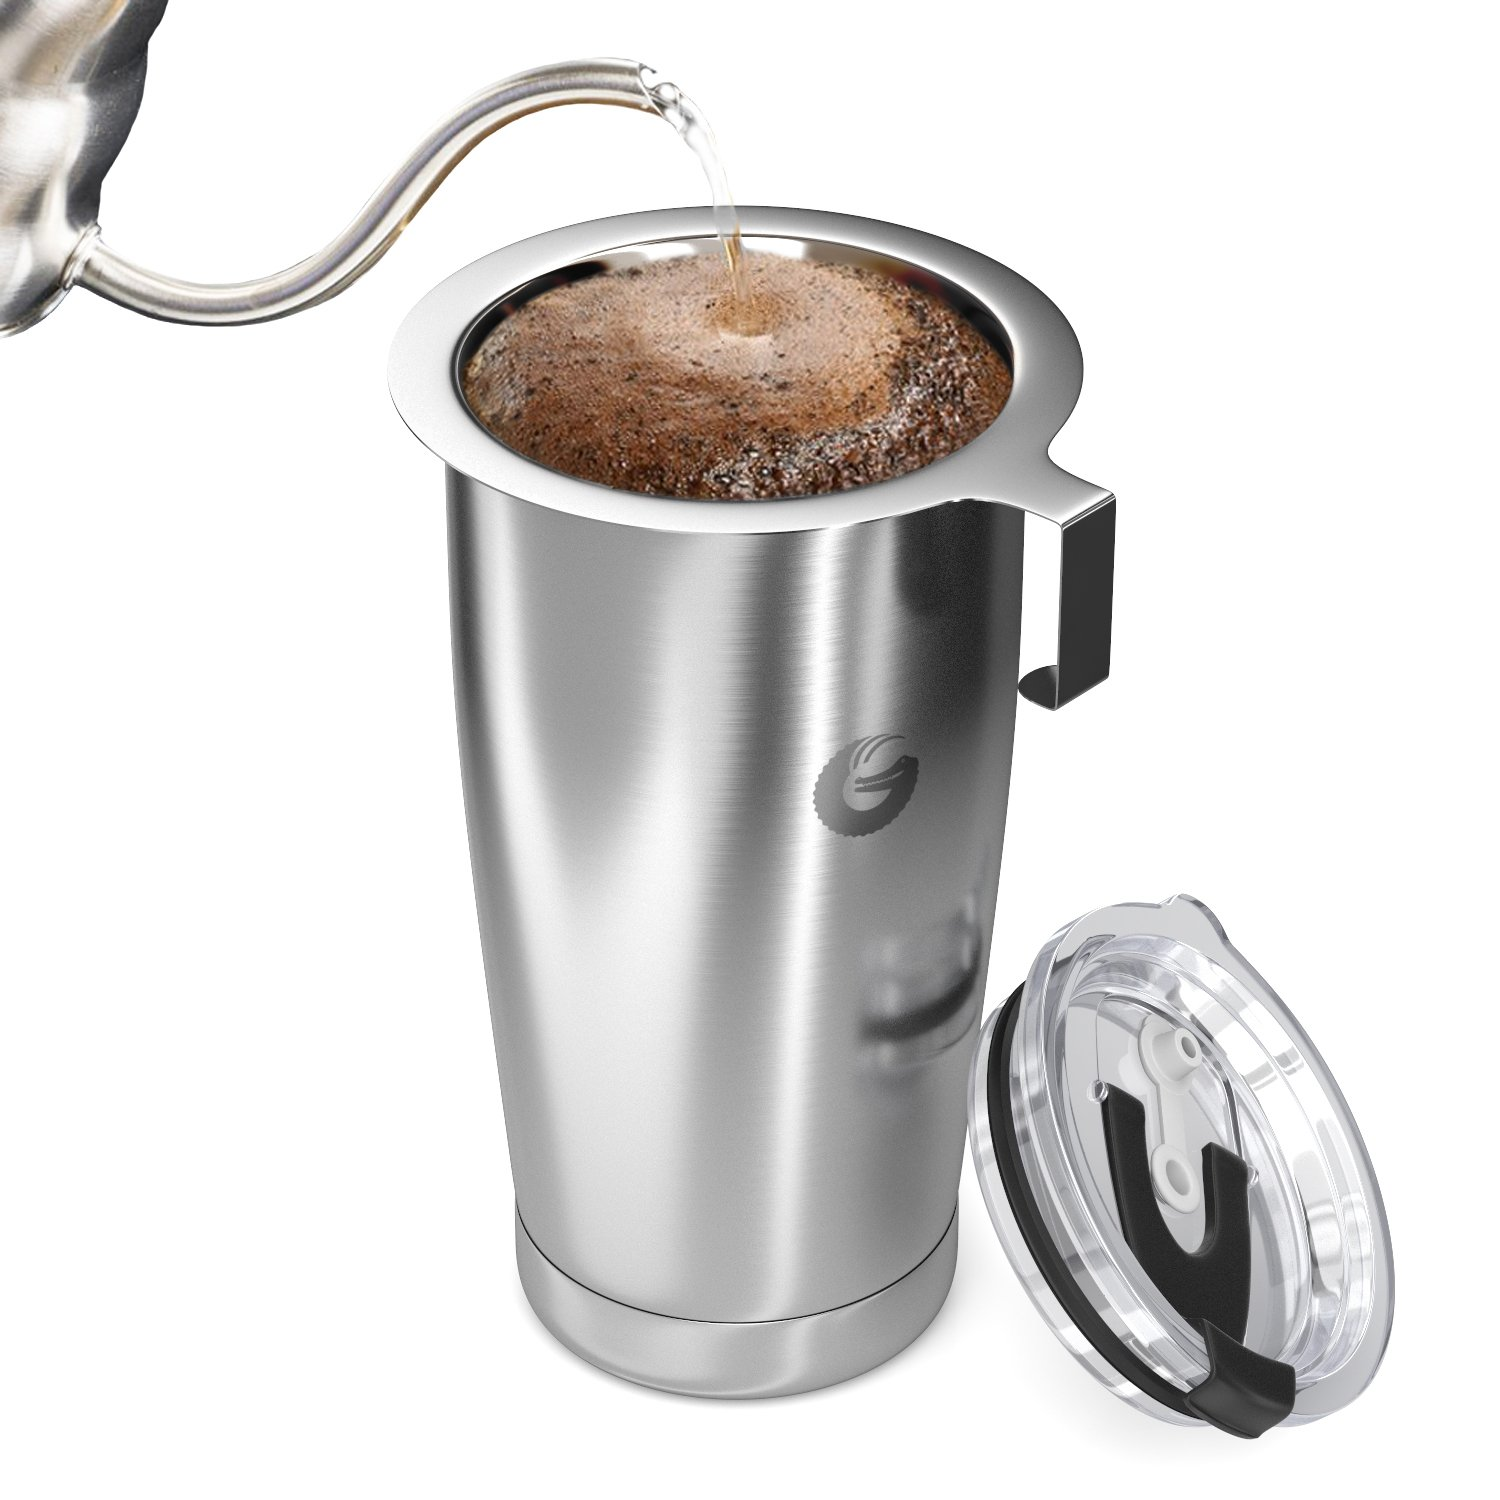 Coffee Gator Pour Over Coffee Maker - All in One Thermal Travel Mug and Brewer - Vacuum Insulated Stainless Steel - 20 ounce - Silver by Coffee Gator (Image #4)